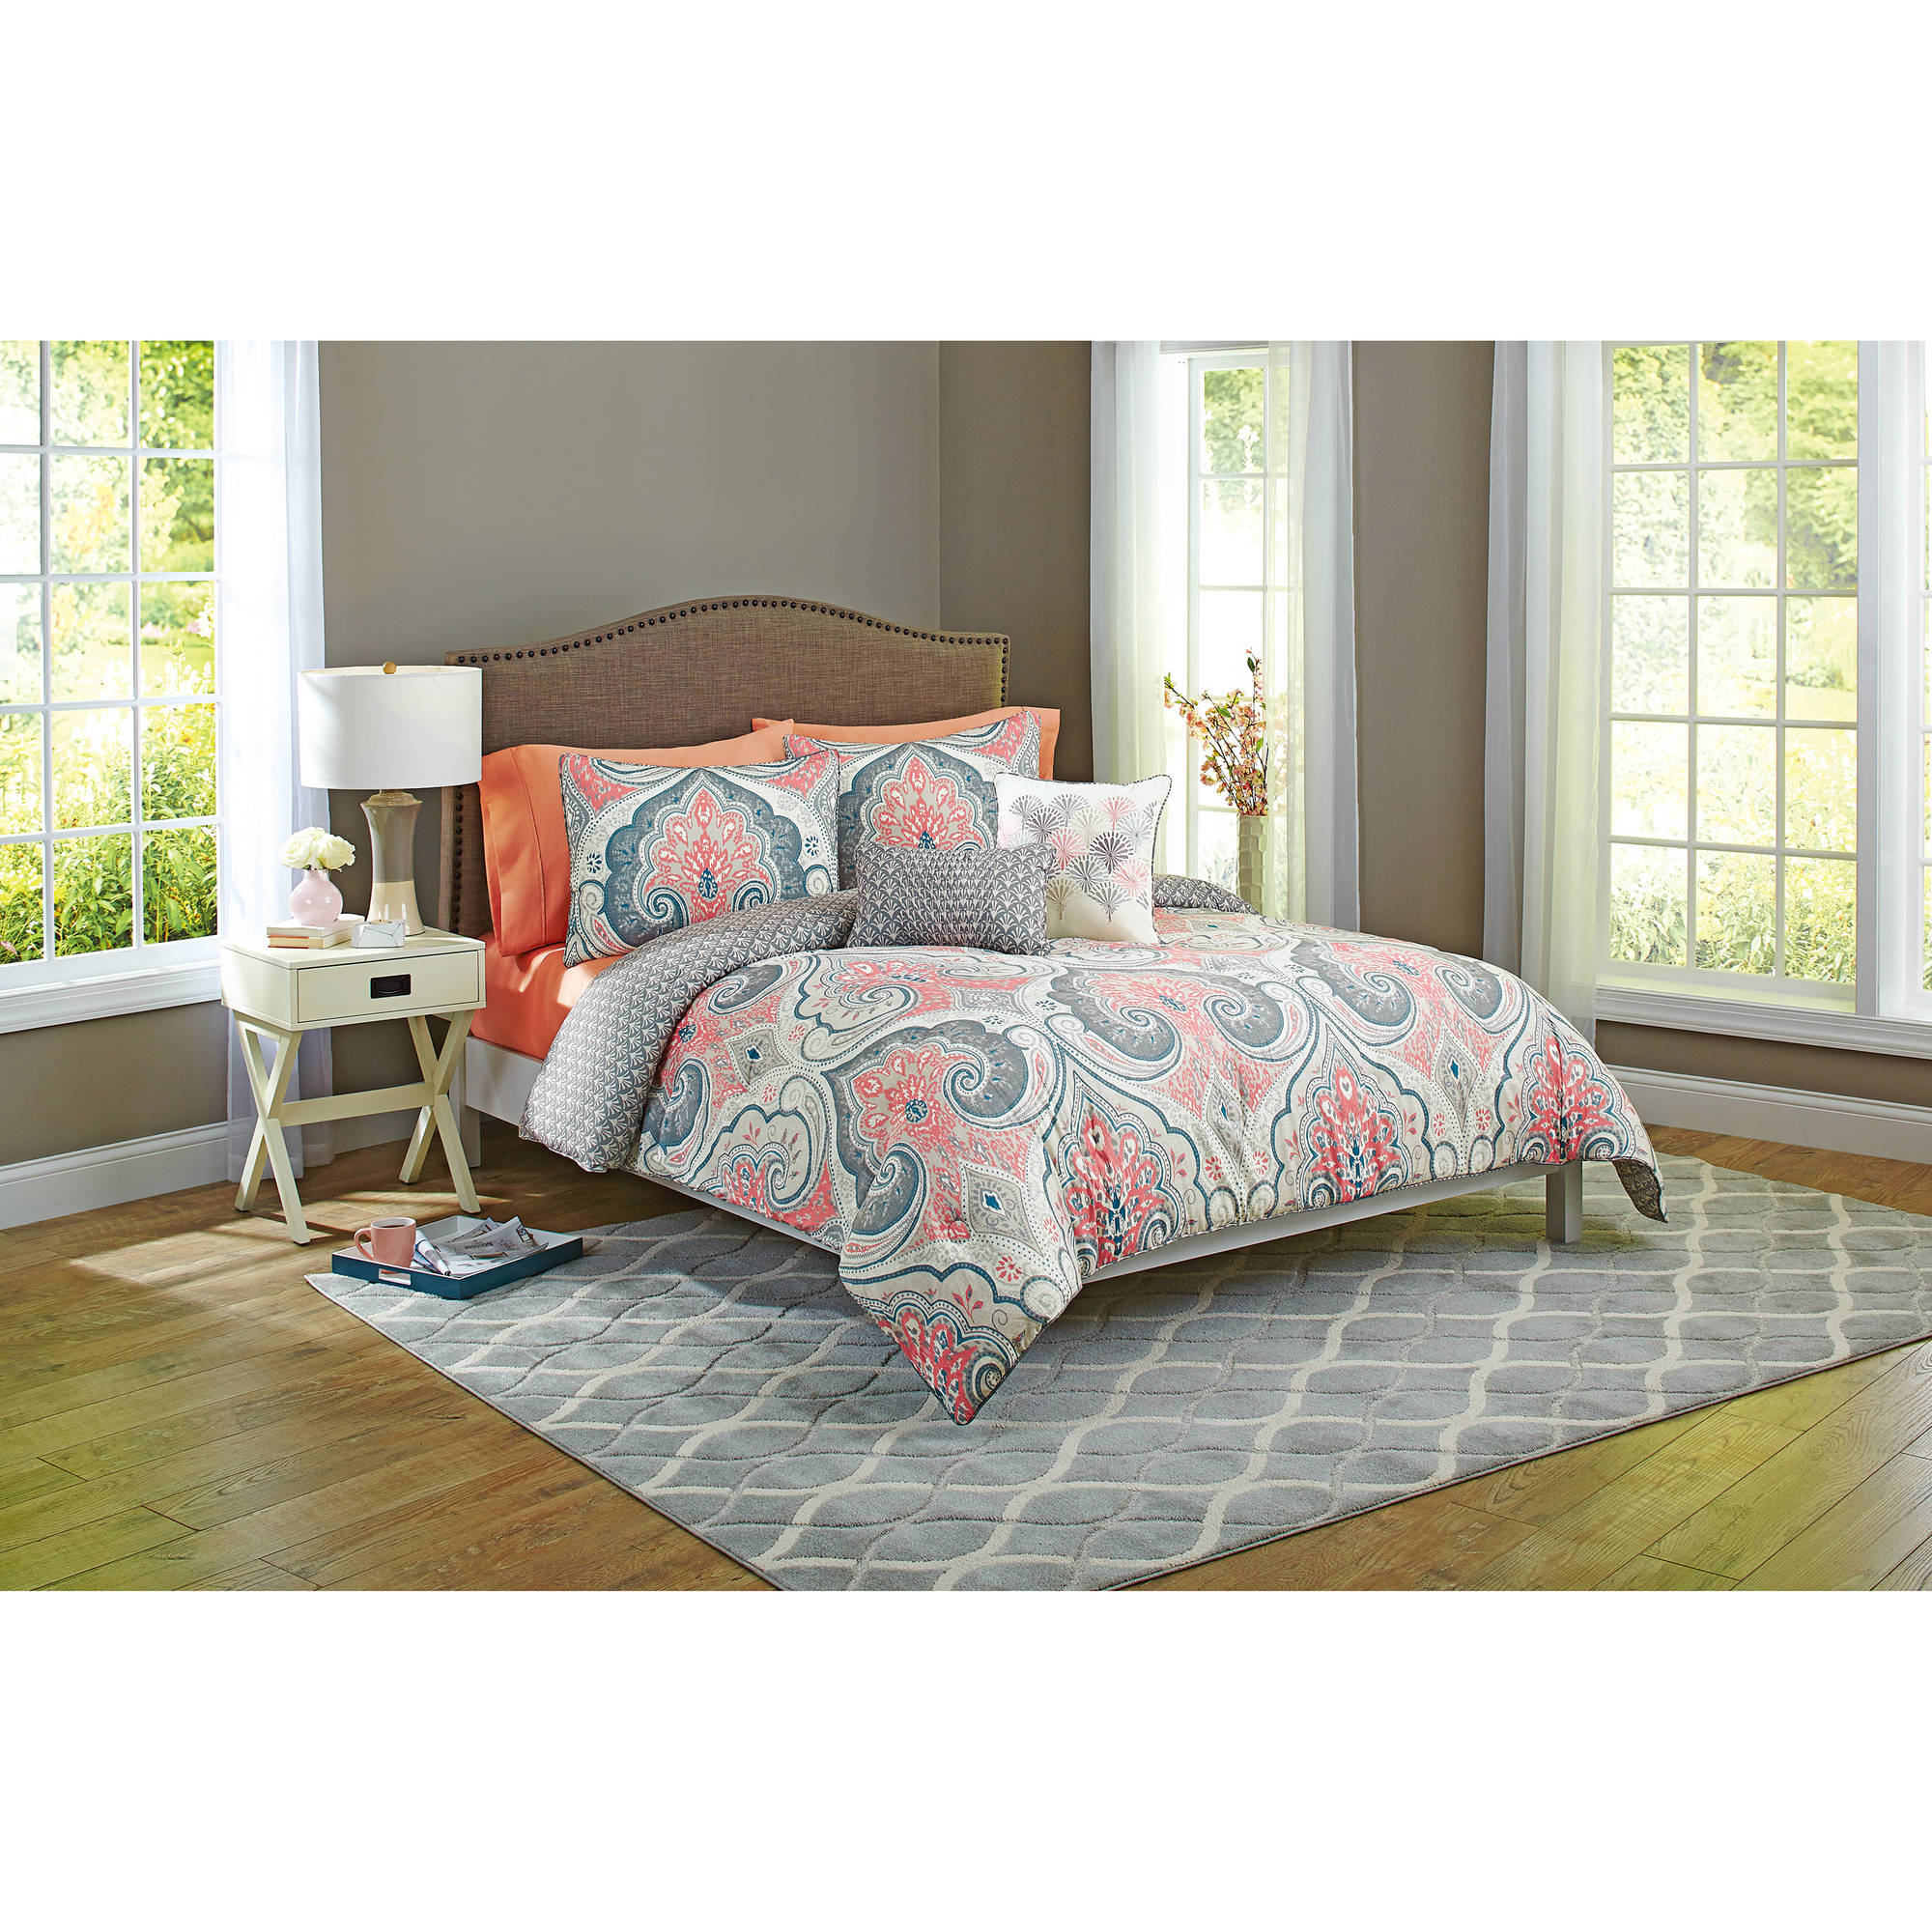 Better Home and Gardens Grey Medallion 5-Piece Bedding Comforter Set